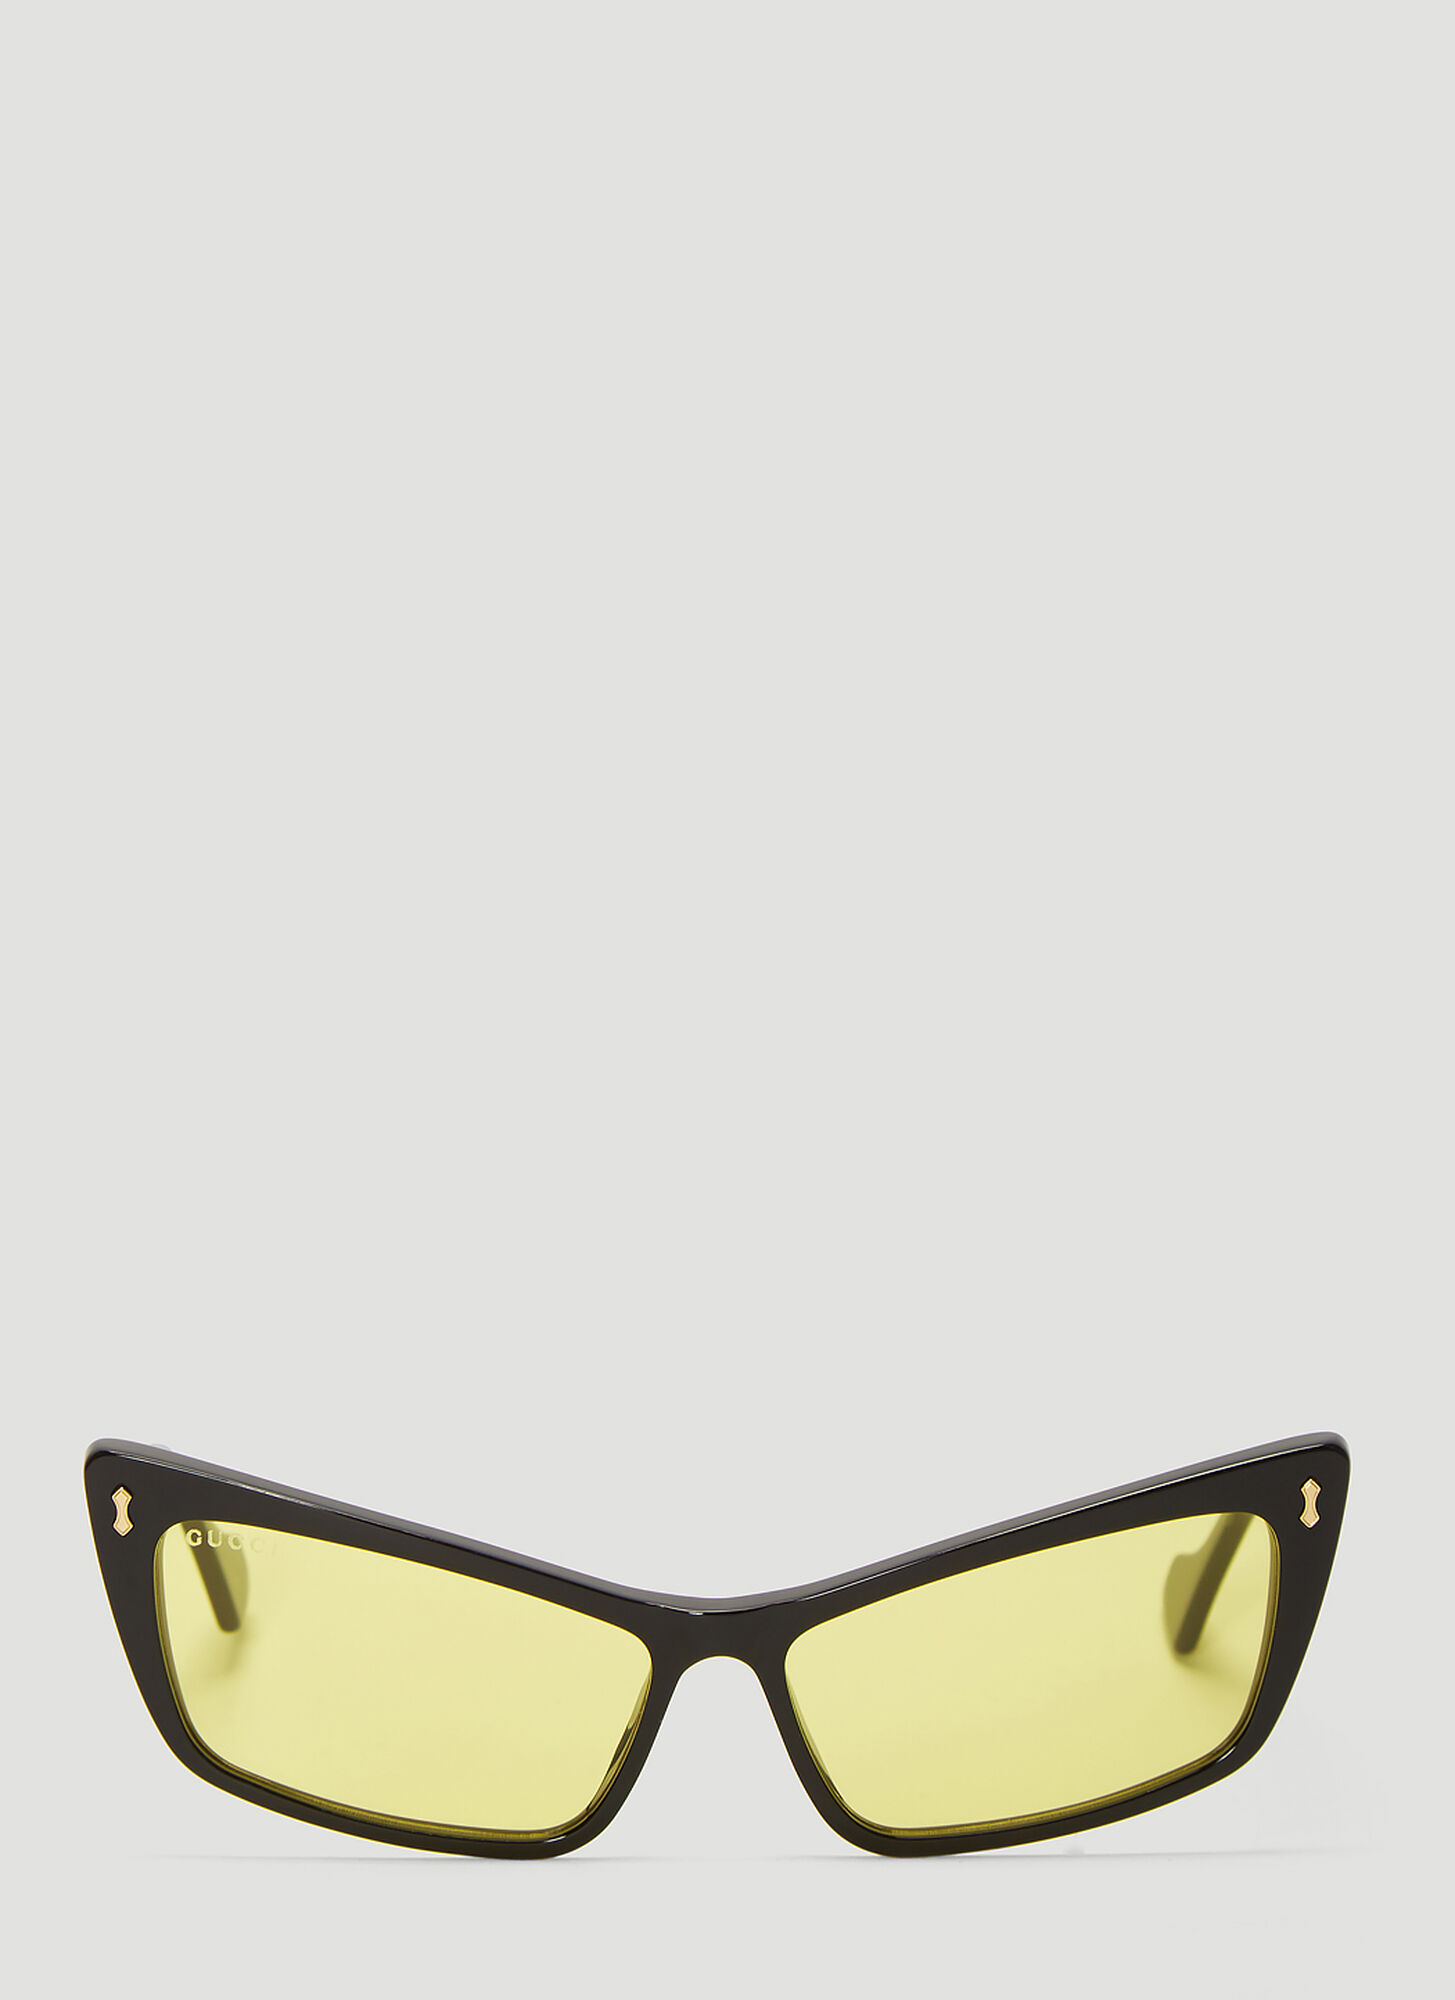 Gucci Rectangular Acetate Sunglasses in Black